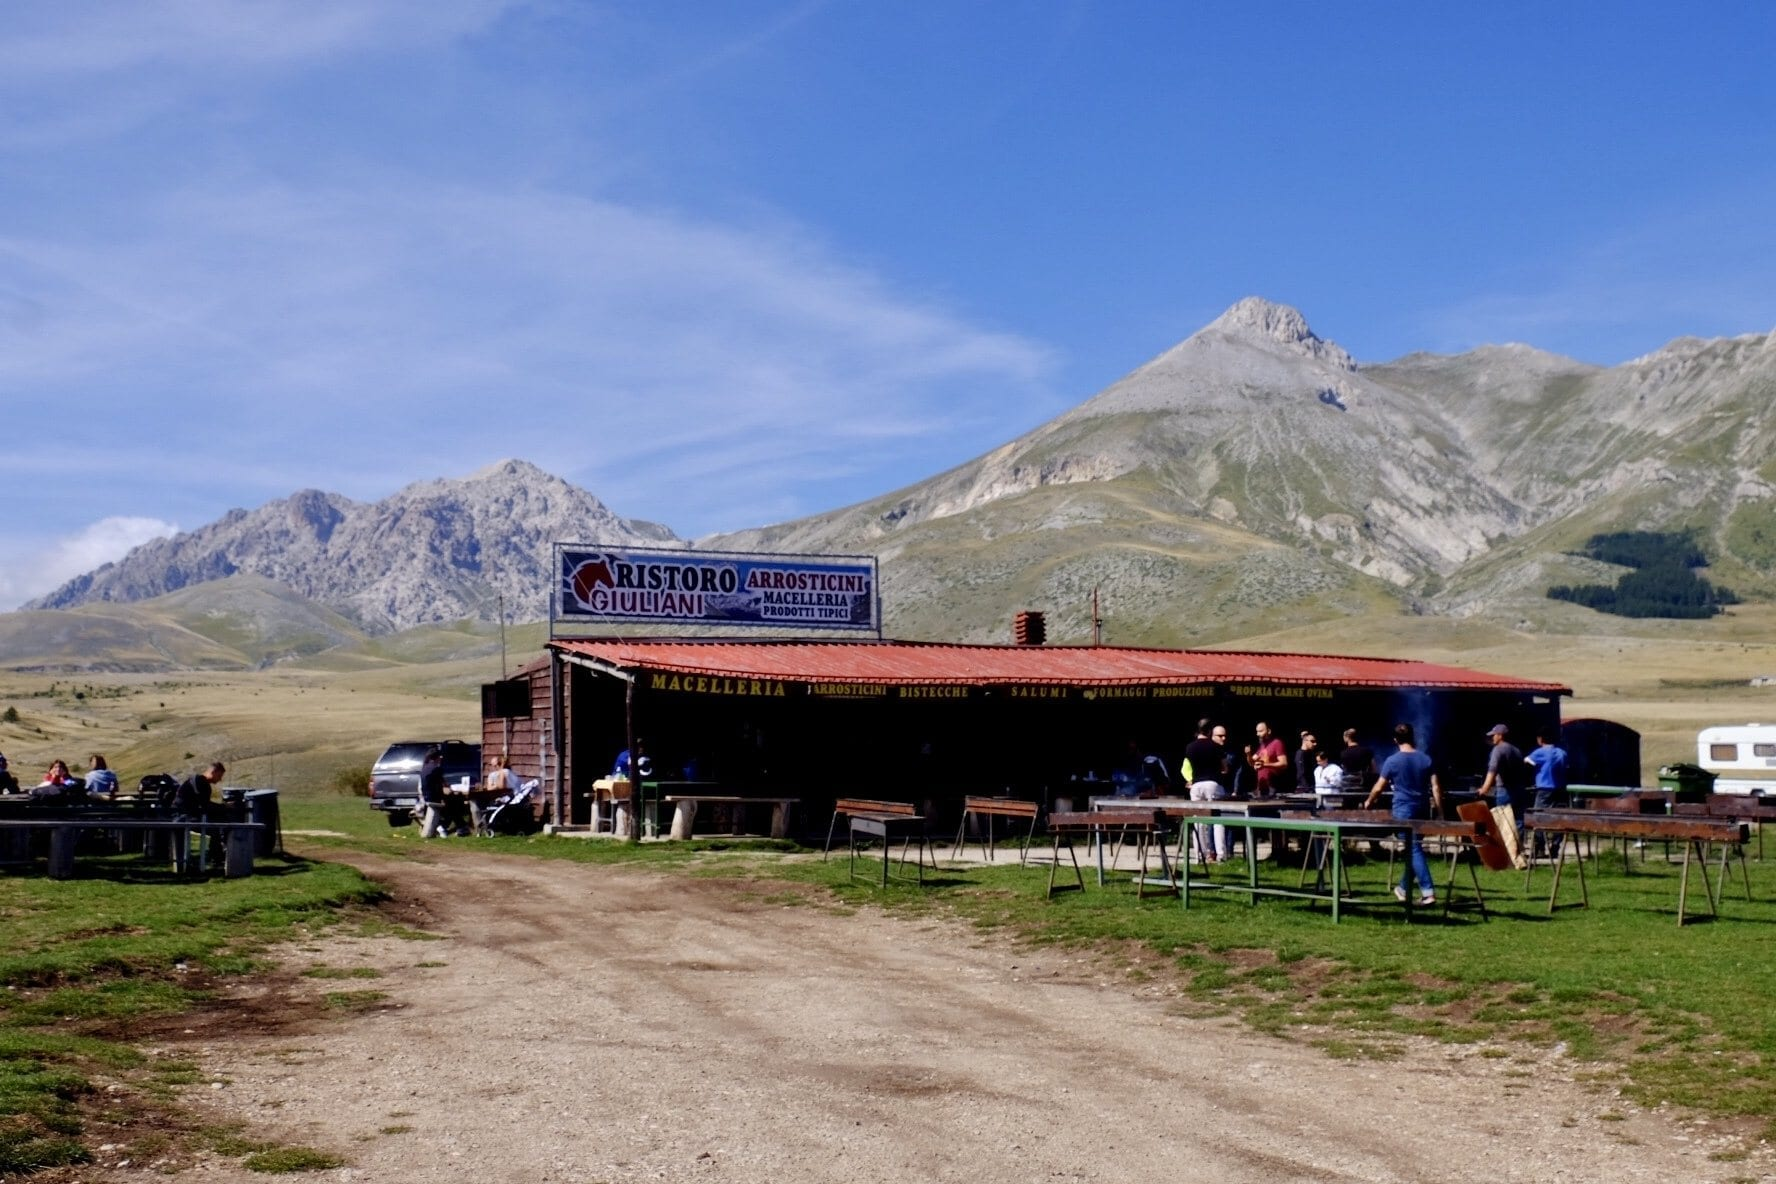 A butcher shop with smoking grills in front of it, in the middle of nowhere in Abruzzo, Italy. Incredible mountains rise in the background underneath a blue sky.